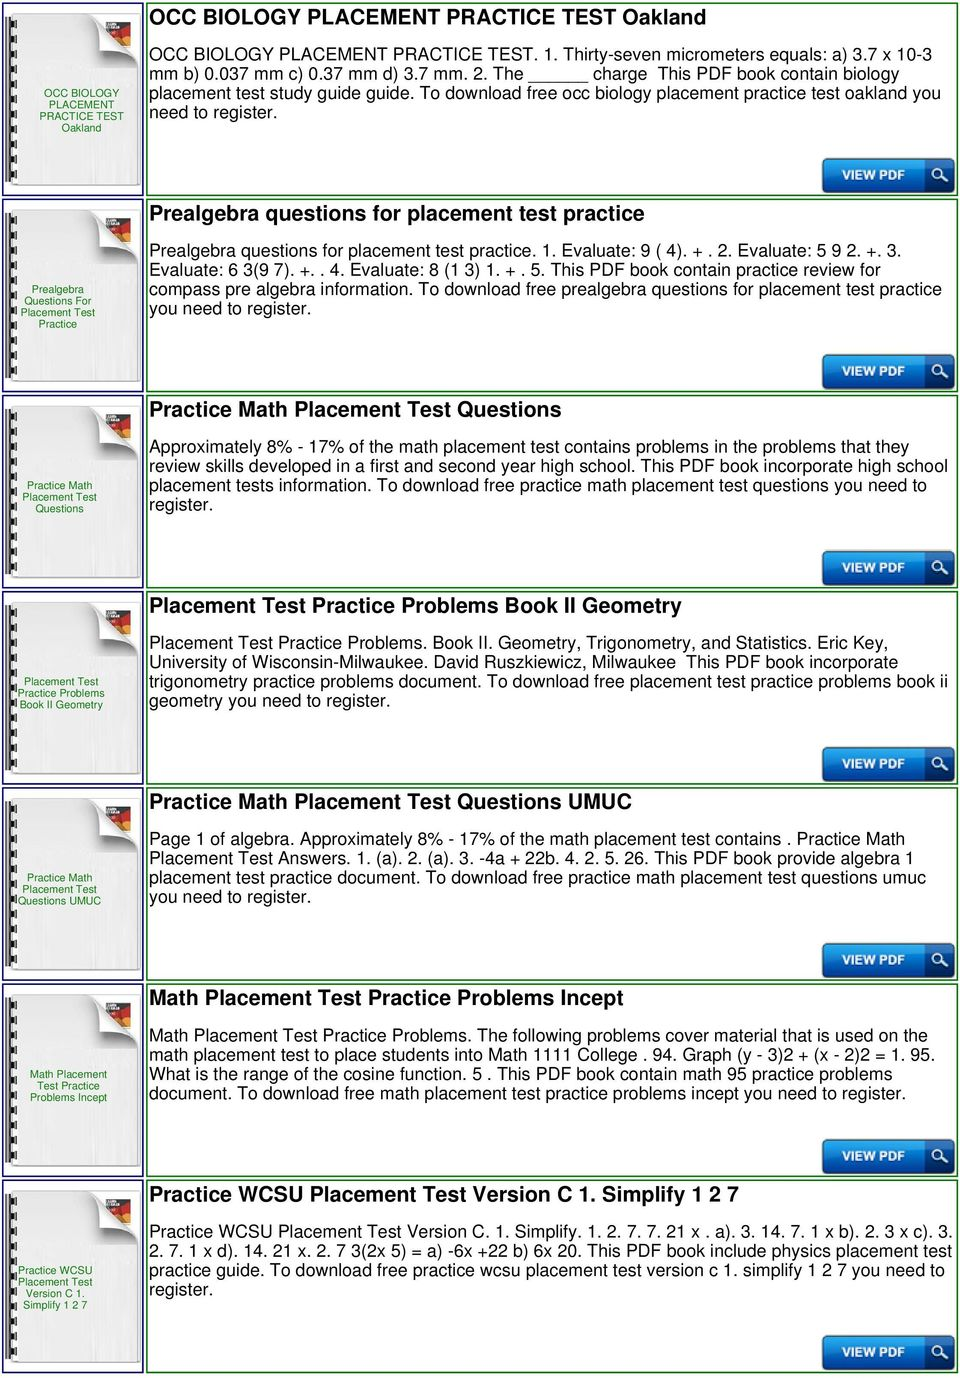 To download free occ biology placement practice test oakland you Prealgebra questions for placement test practice Prealgebra Questions For Practice Prealgebra questions for placement test practice. 1.